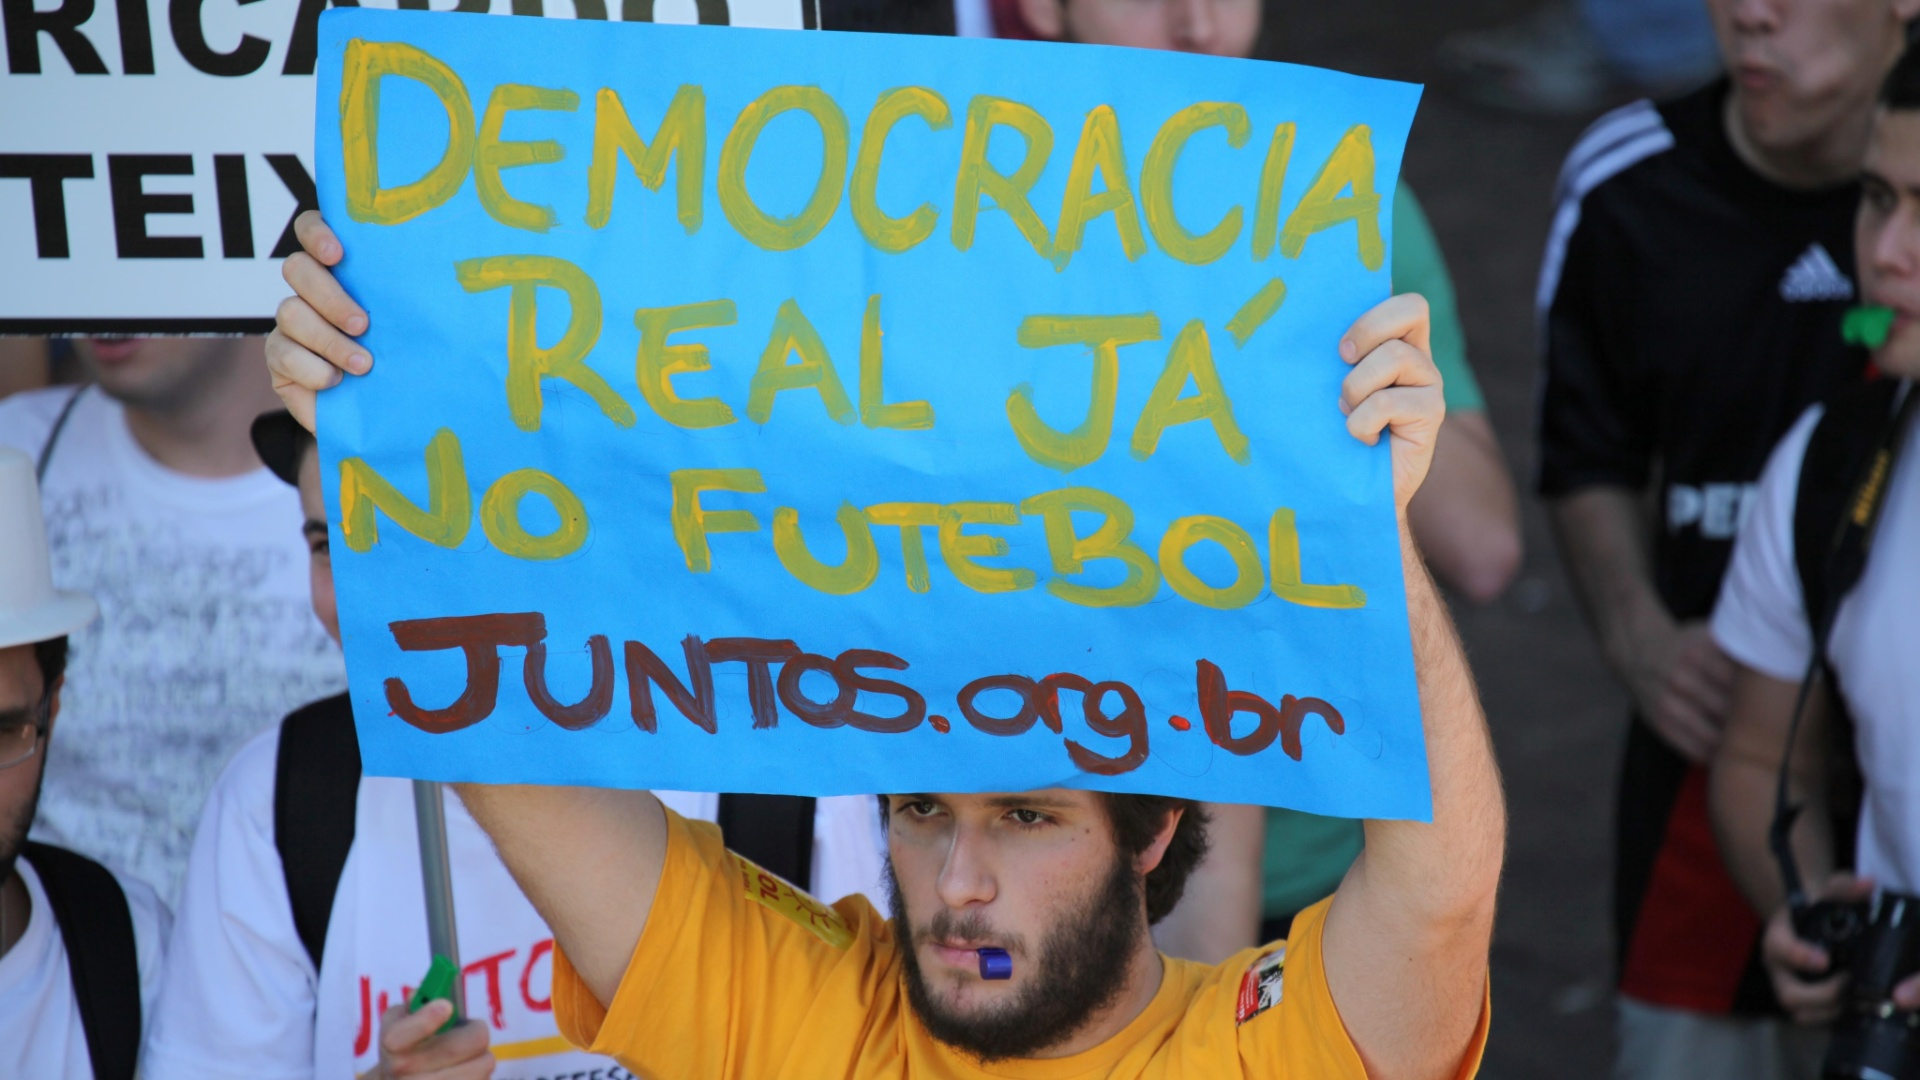 Manifestantes pedem democracia no futebol durante protesto em So Paulo (13/08/2011)